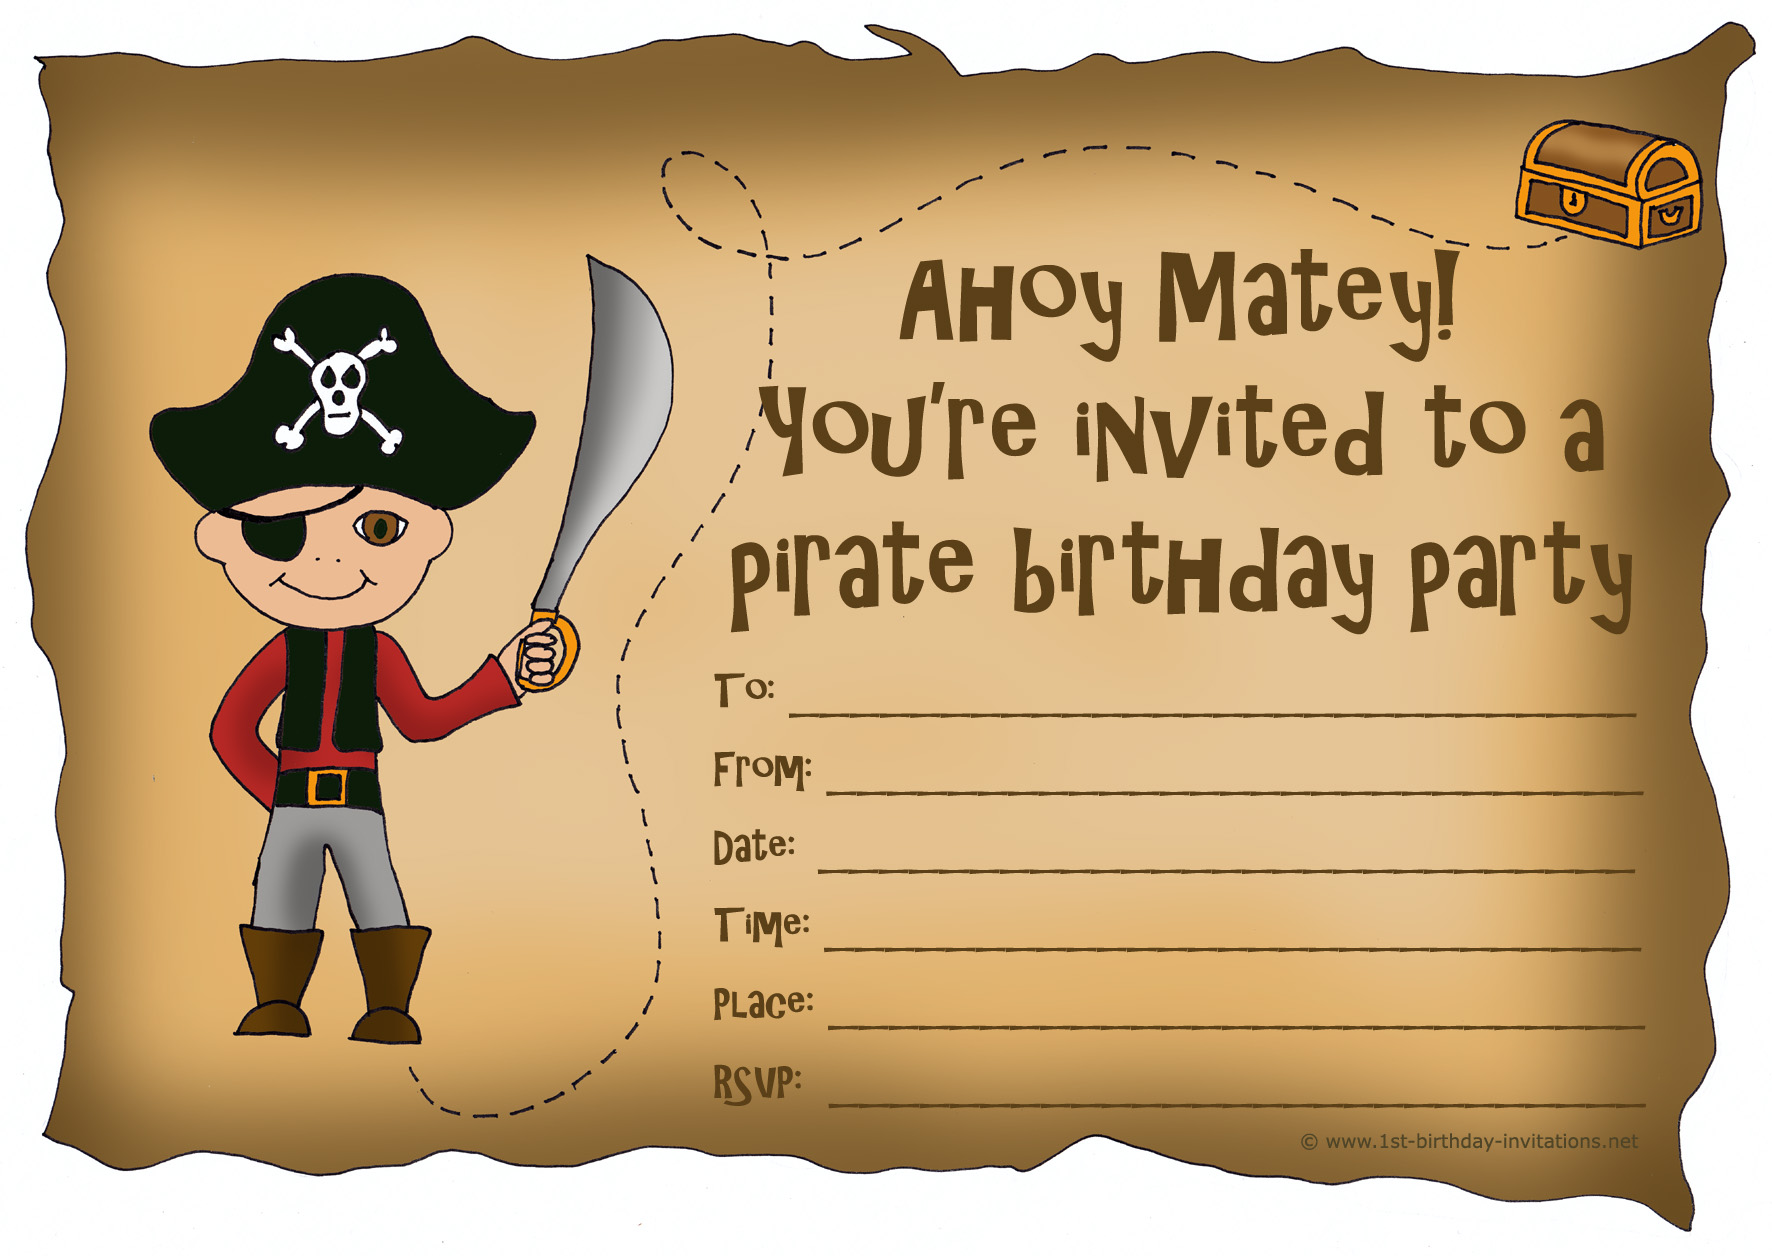 pirate themed birthday party invitation ideas ; Pirate-Themed-Birthday-Party-Invitations-and-get-inspired-to-create-your-own-birthday-Invitation-design-with-this-ideas-9